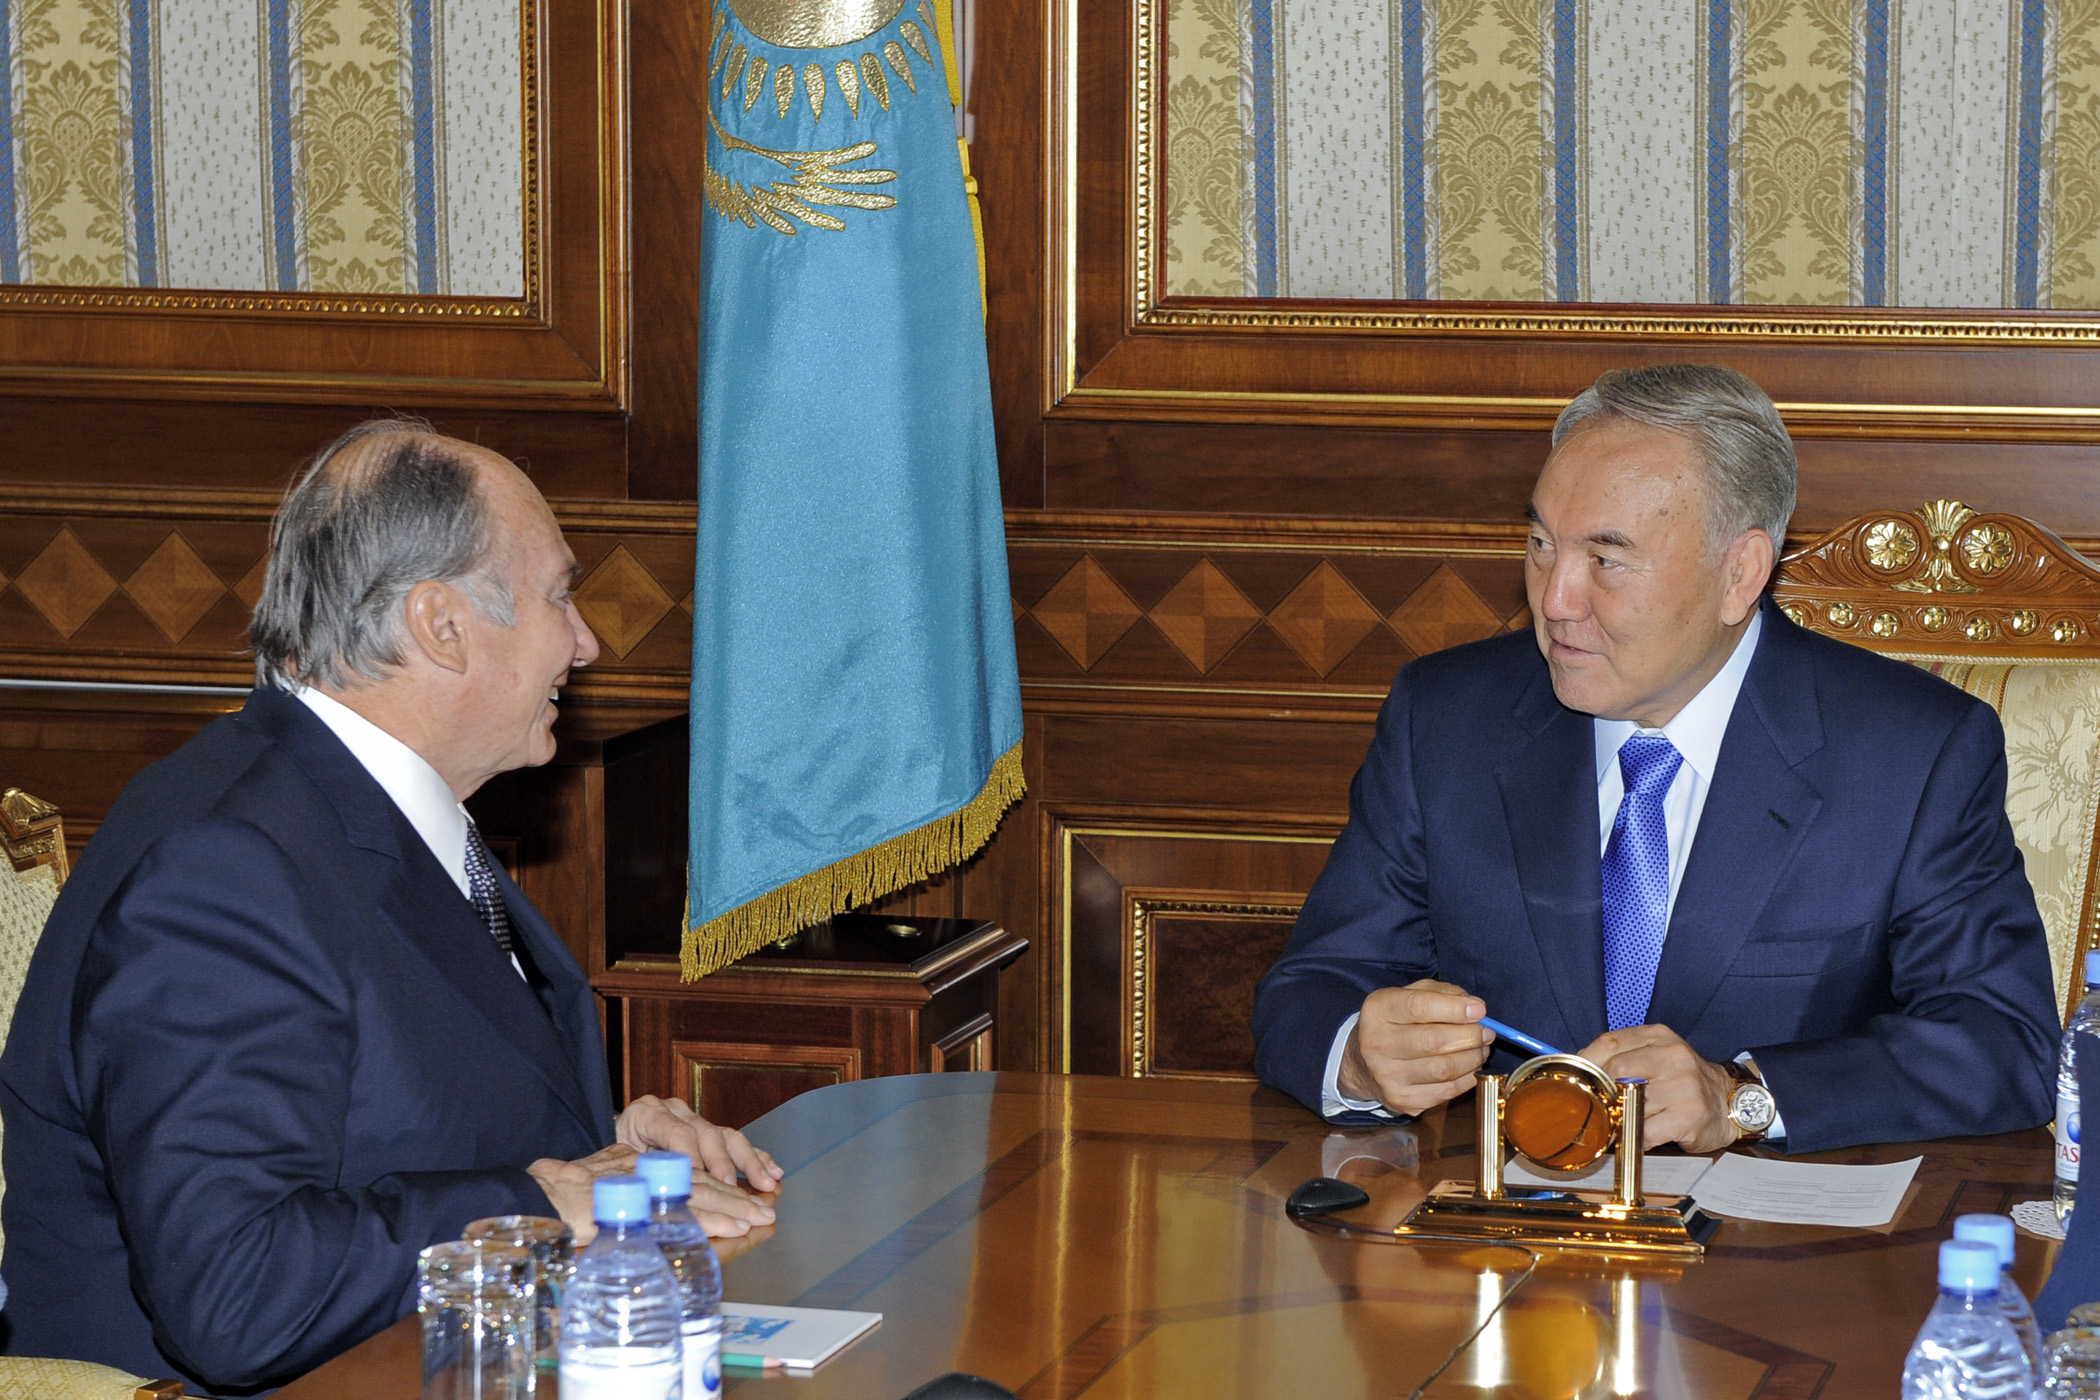 Mawlana Hazar Imam meets with His Excellency President Nursultan Nazarbayev at the Presidential Palace. Photo: Gary Otte